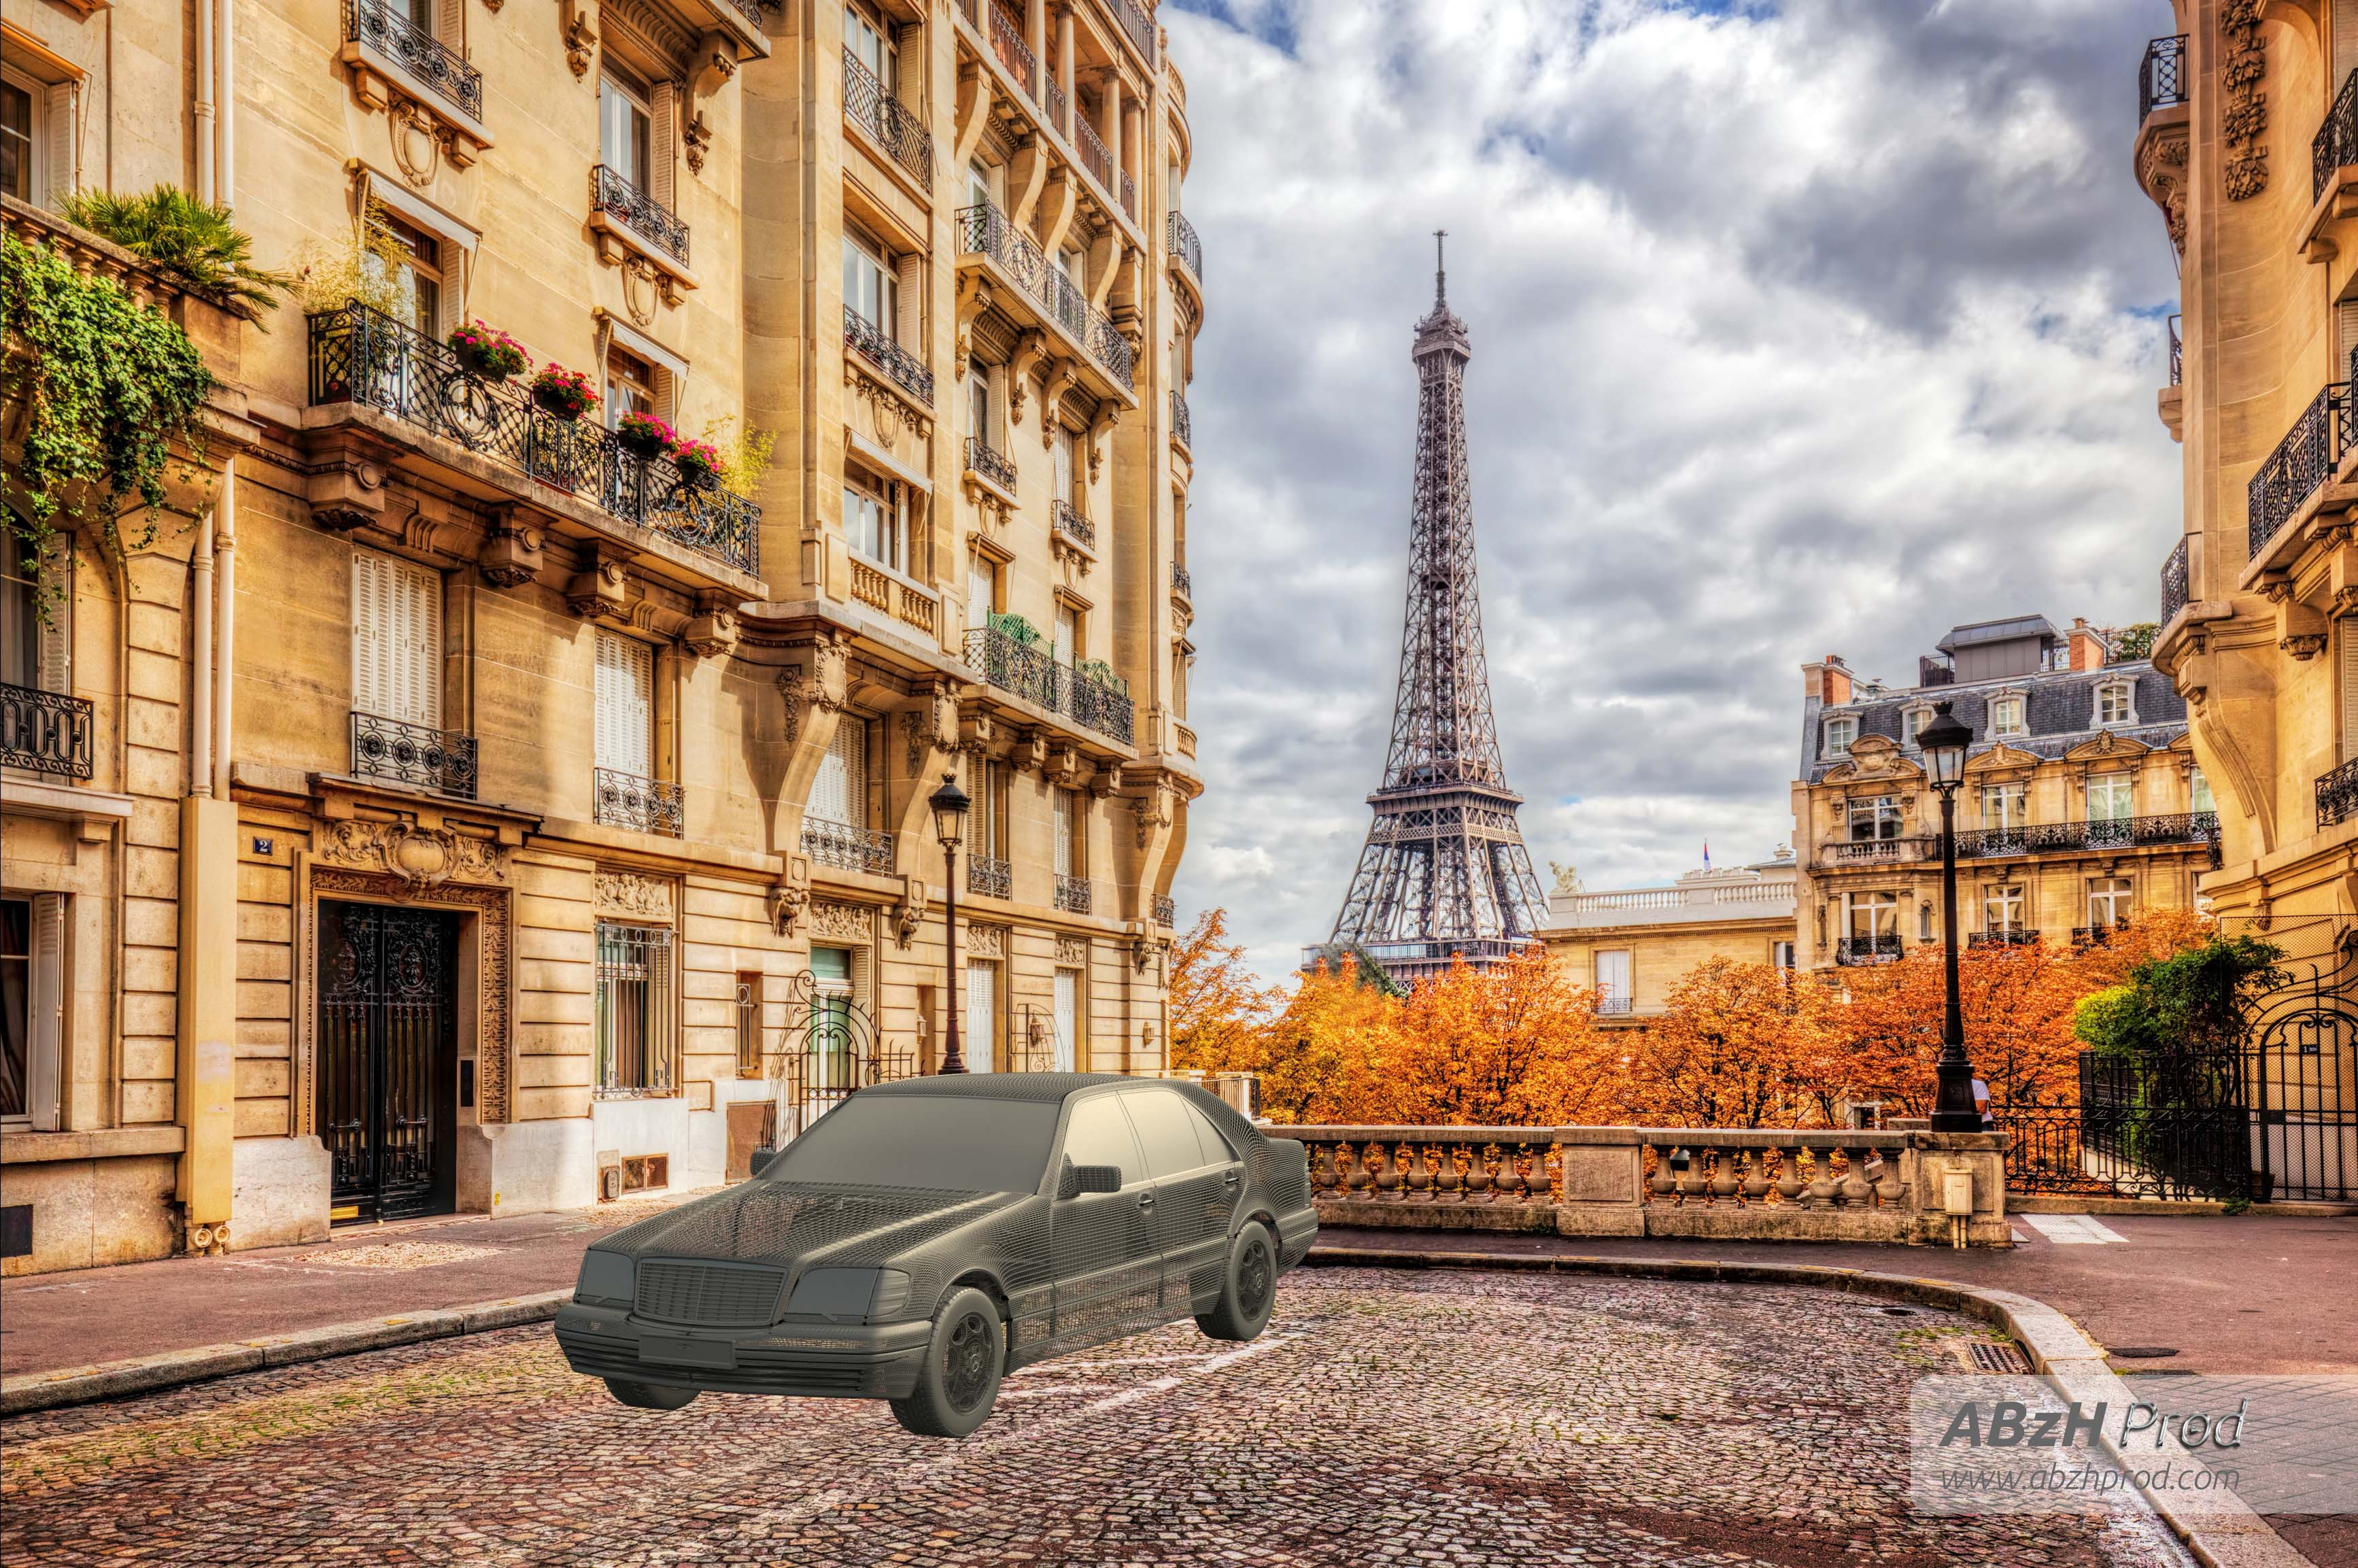 Mercedes S280 M6 Diana Paris Breakdown Tutorial étape 1 - Animation vidéo 3D photoréaliste - Infographiste 3D Freelance - ABzHProd